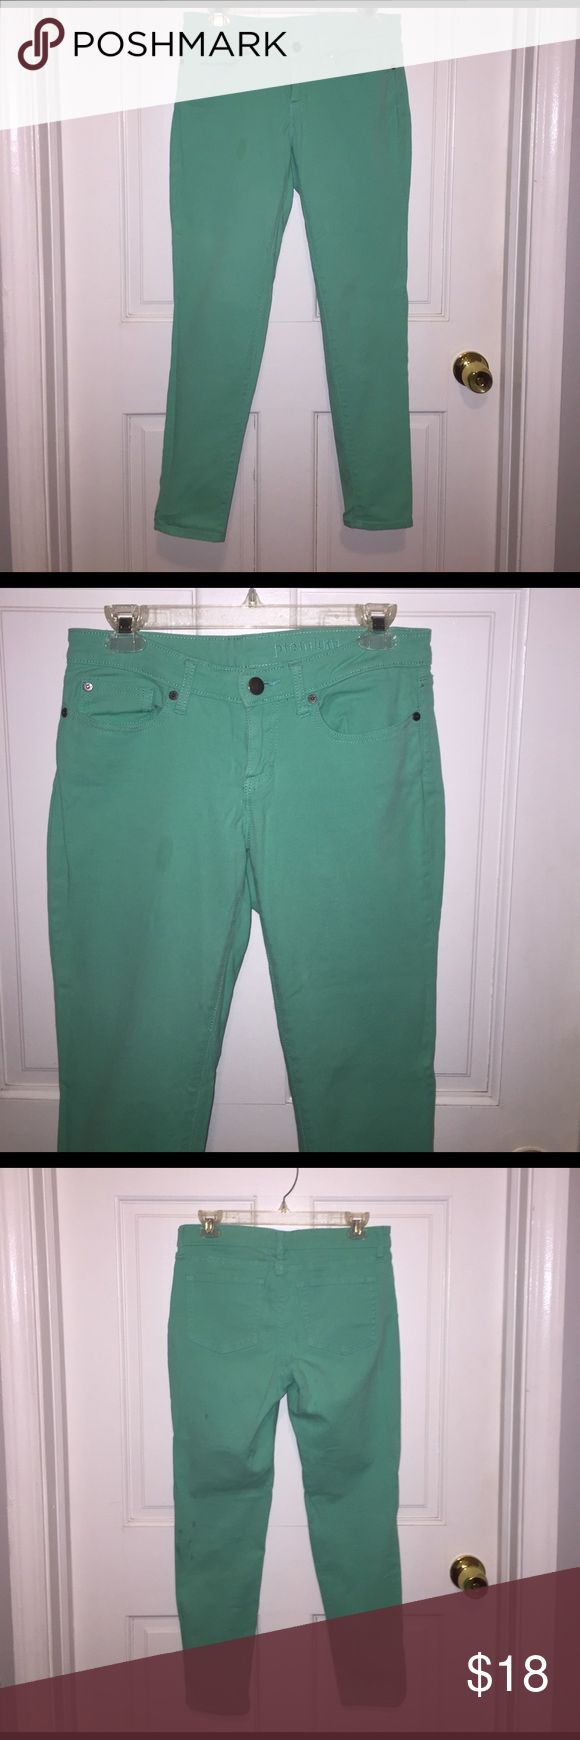 Mint green jeans 👖 Mint green skinny crop jeans. Fit is skinny but still stretchy and comfortable. Mid rise. Worn a handful of times but in great condition. GAP Jeans Ankle & Cropped